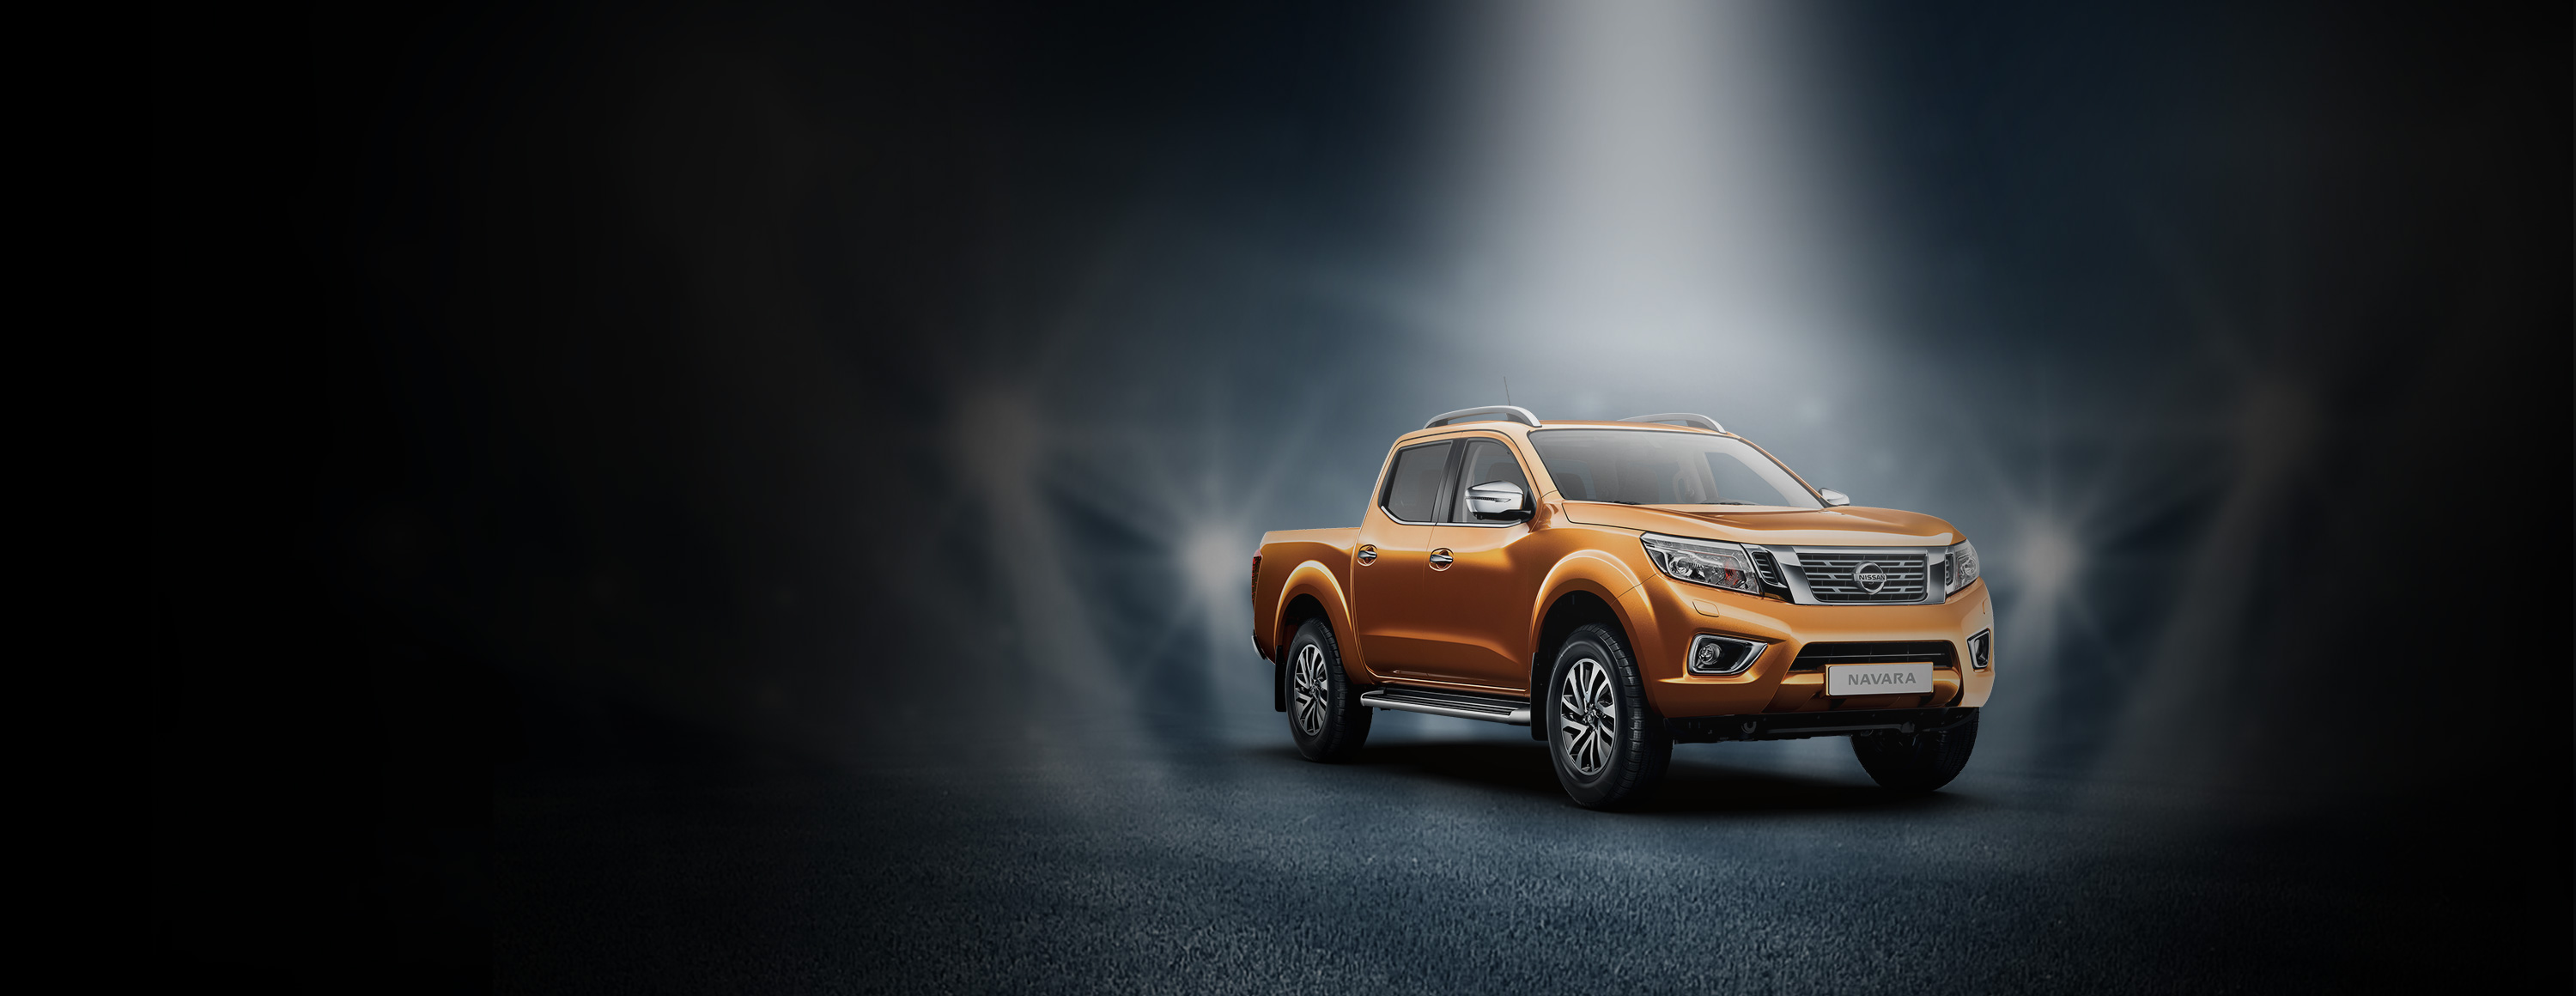 Nissan-navara-mainpush-desktop.jpg